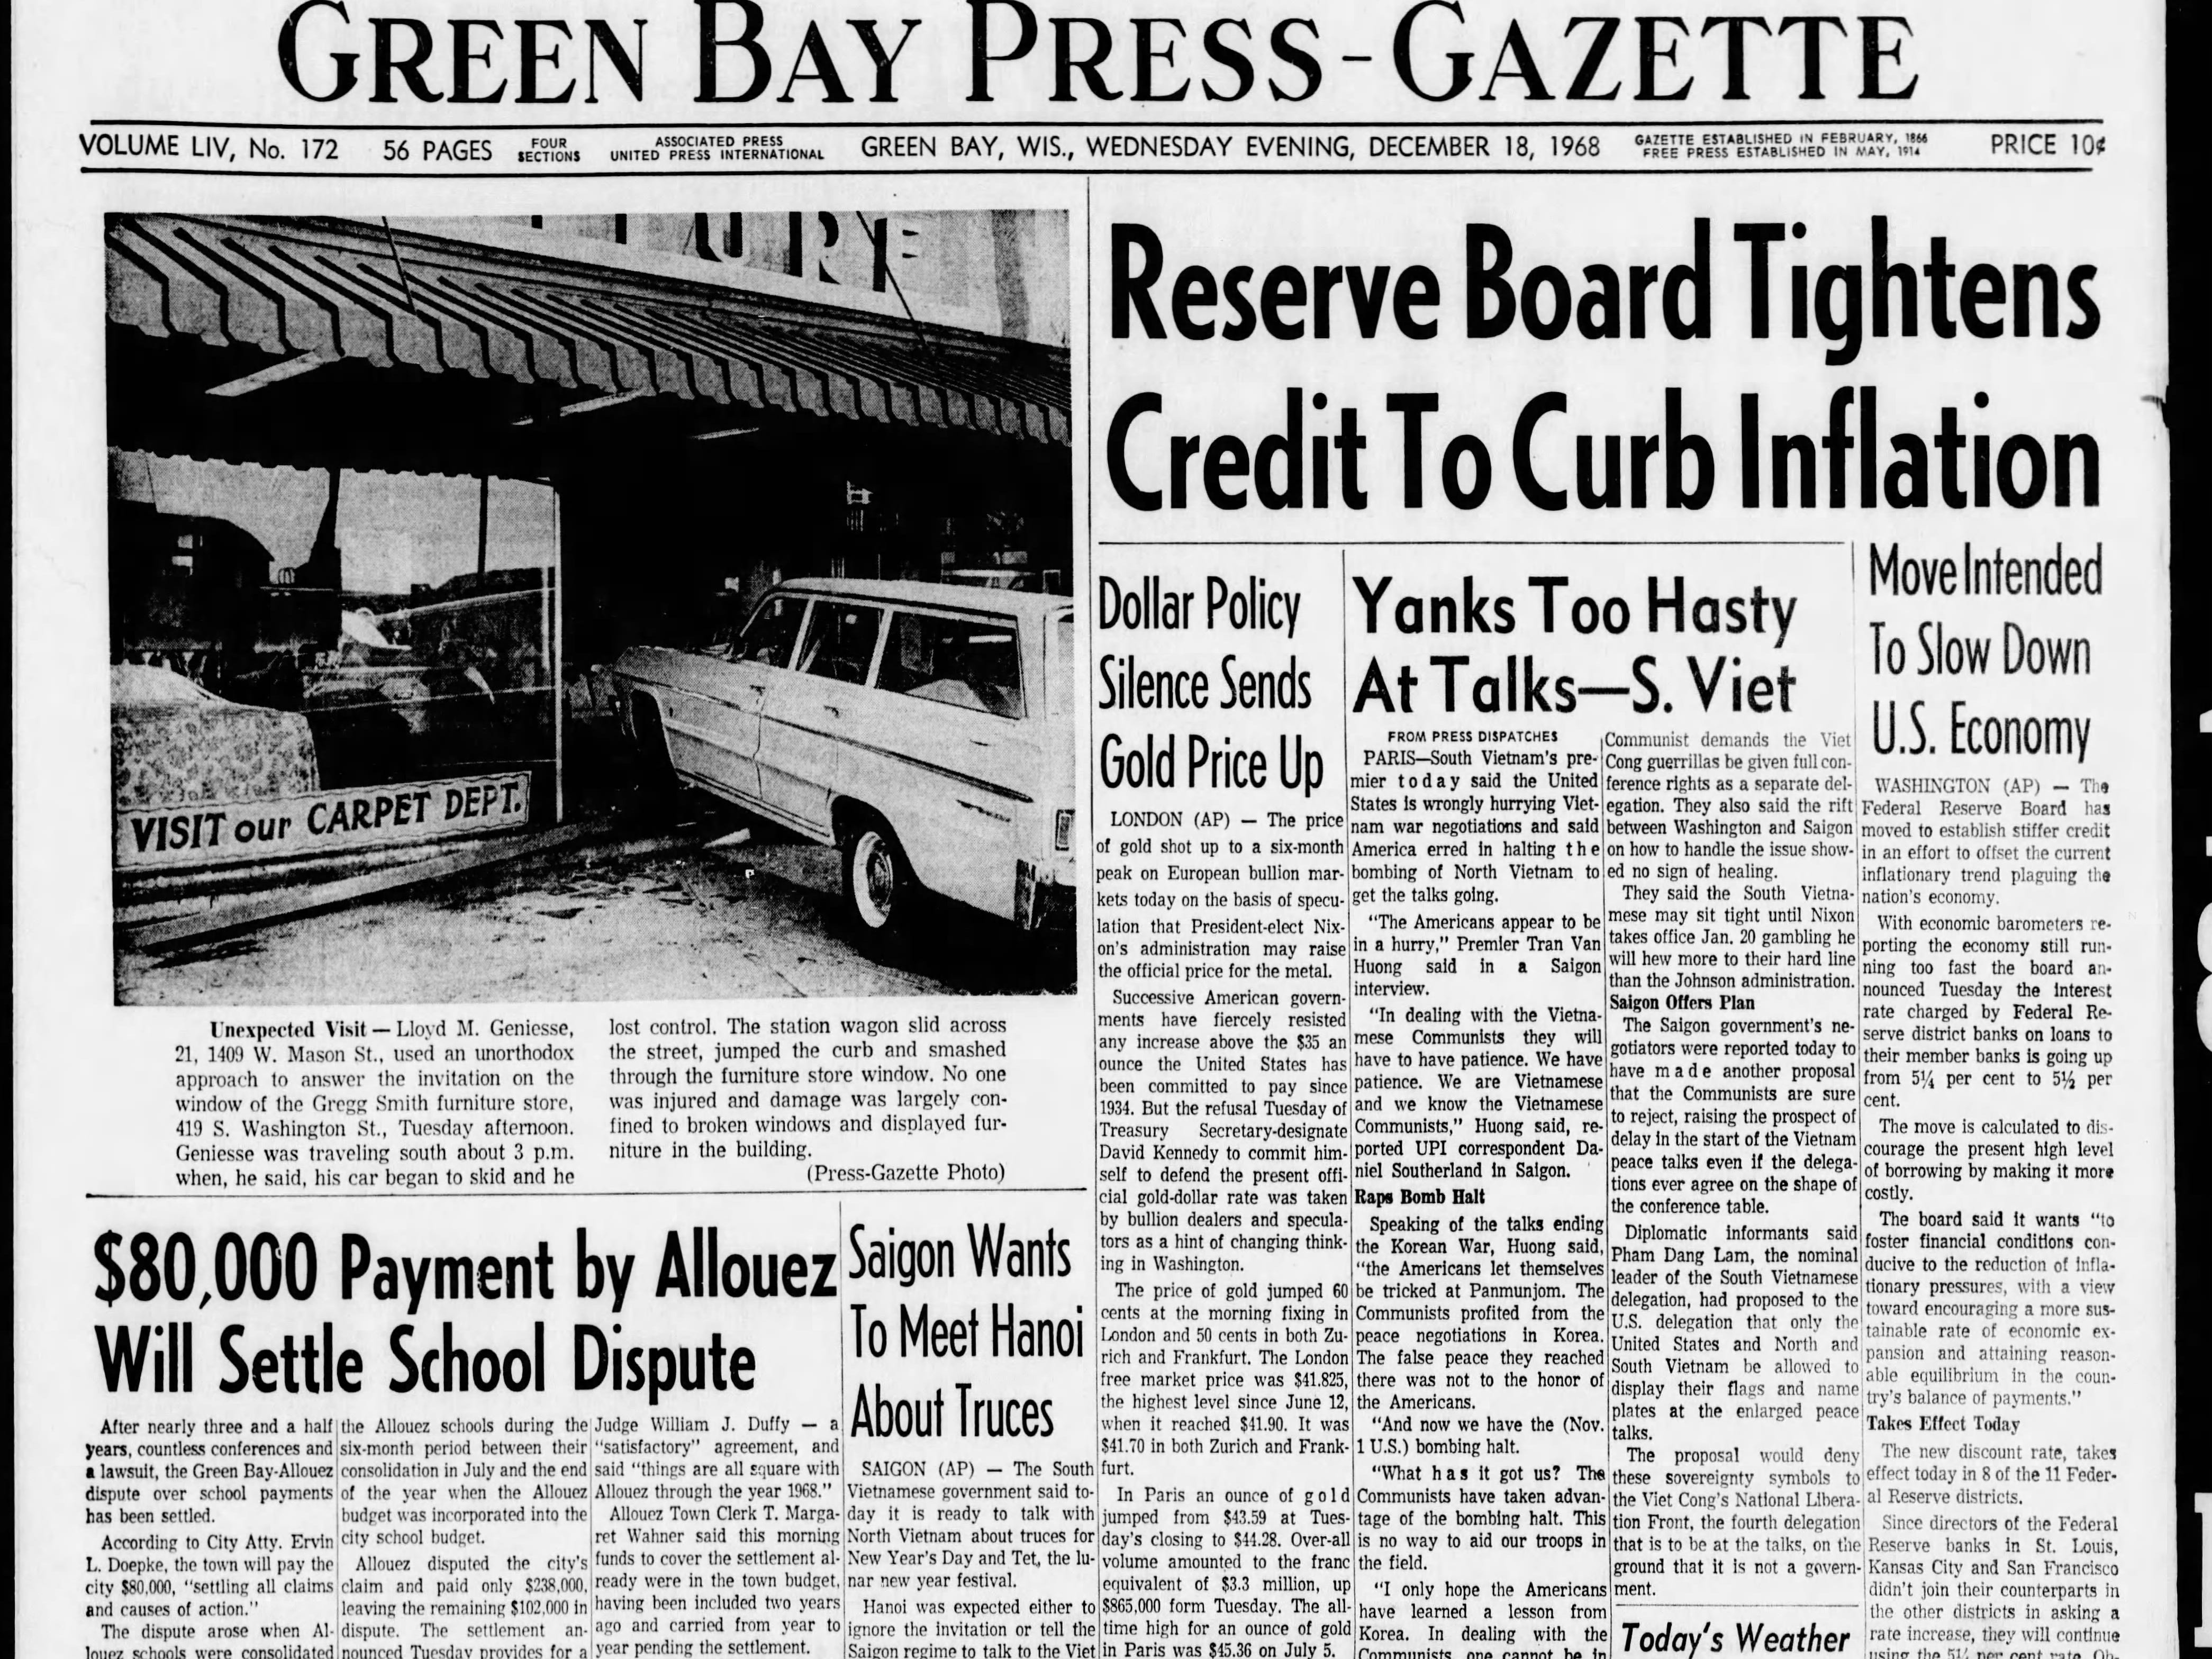 Today in History: Dec. 18, 1968